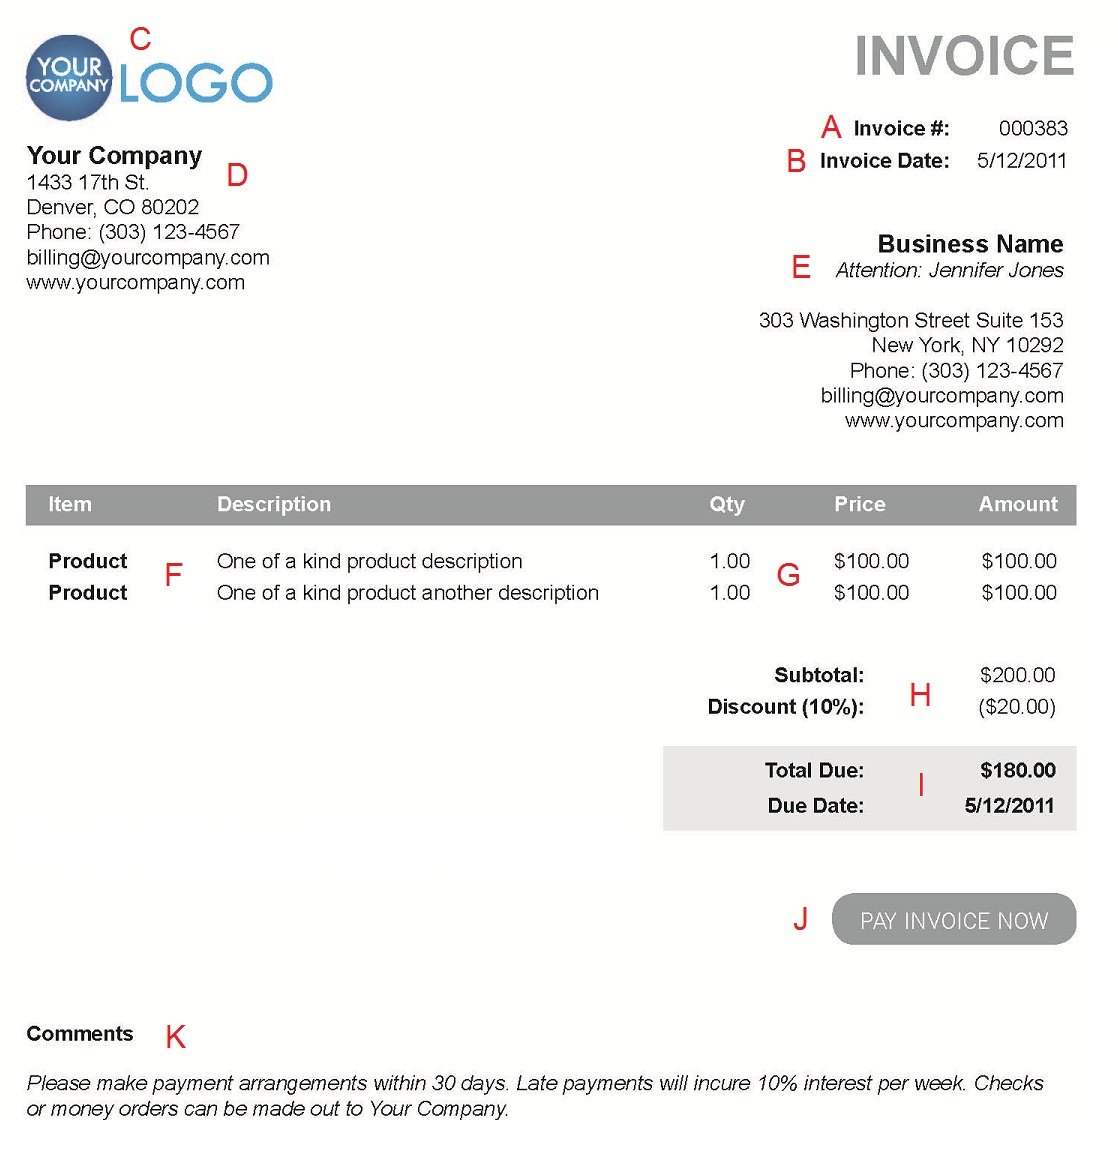 Soulfulpowerus  Surprising The  Different Sections Of An Electronic Payment Invoice With Excellent A  With Delightful Invoice Terminology Also Software Invoice In Addition Free Invoice Templet And Real Estate Invoice Template As Well As Free Business Invoice Templates Additionally Invoice Template For Google Drive From Paysimplecom With Soulfulpowerus  Excellent The  Different Sections Of An Electronic Payment Invoice With Delightful A  And Surprising Invoice Terminology Also Software Invoice In Addition Free Invoice Templet From Paysimplecom